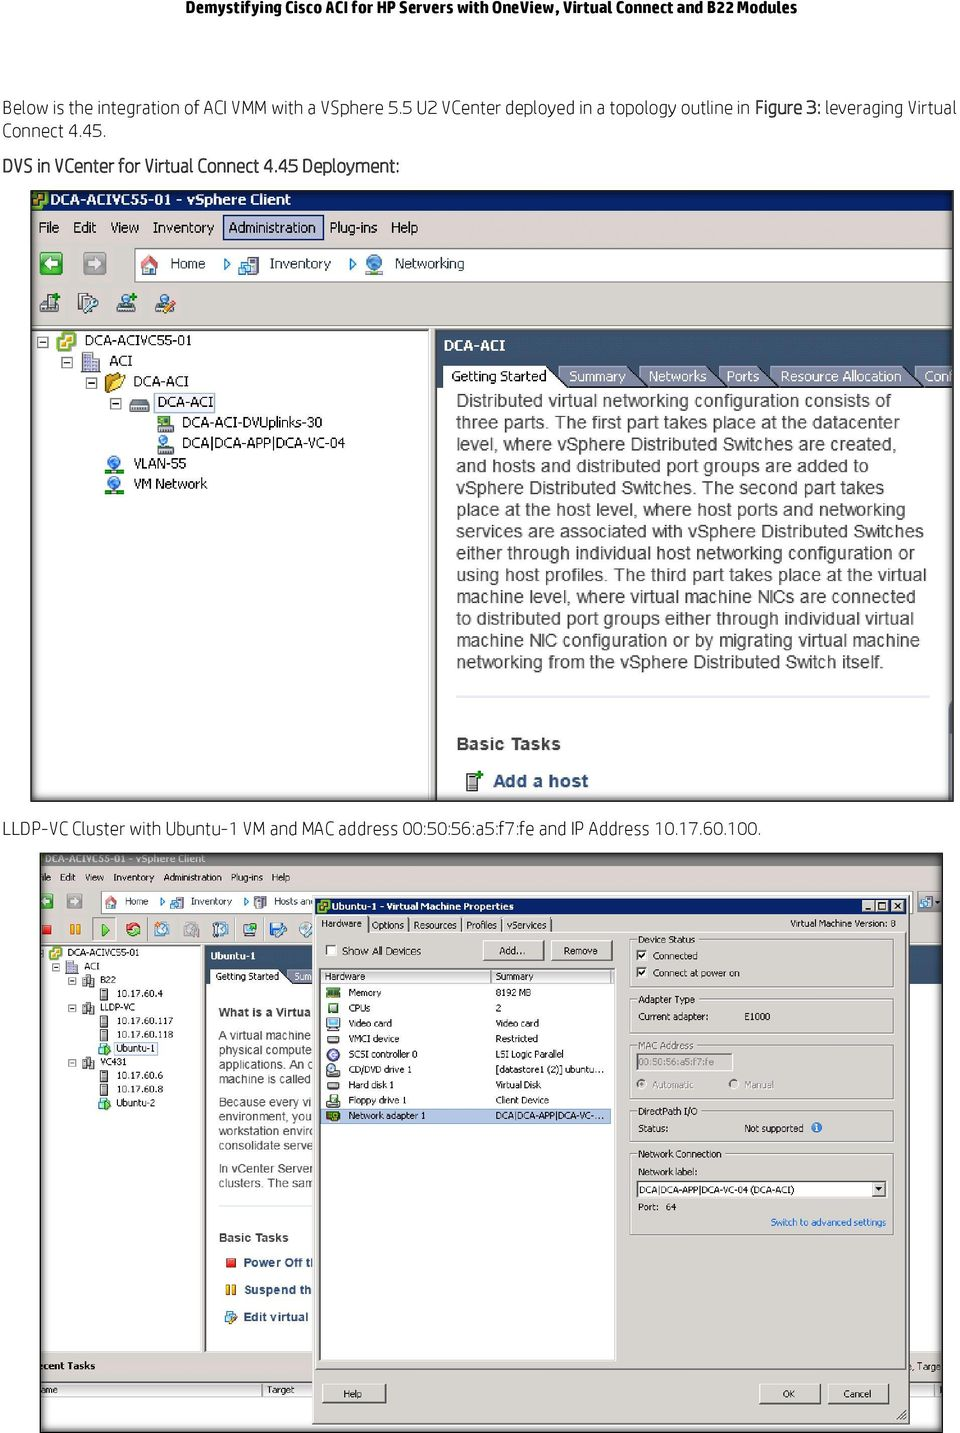 Demystifying Cisco ACI for HP Servers with OneView, Virtual